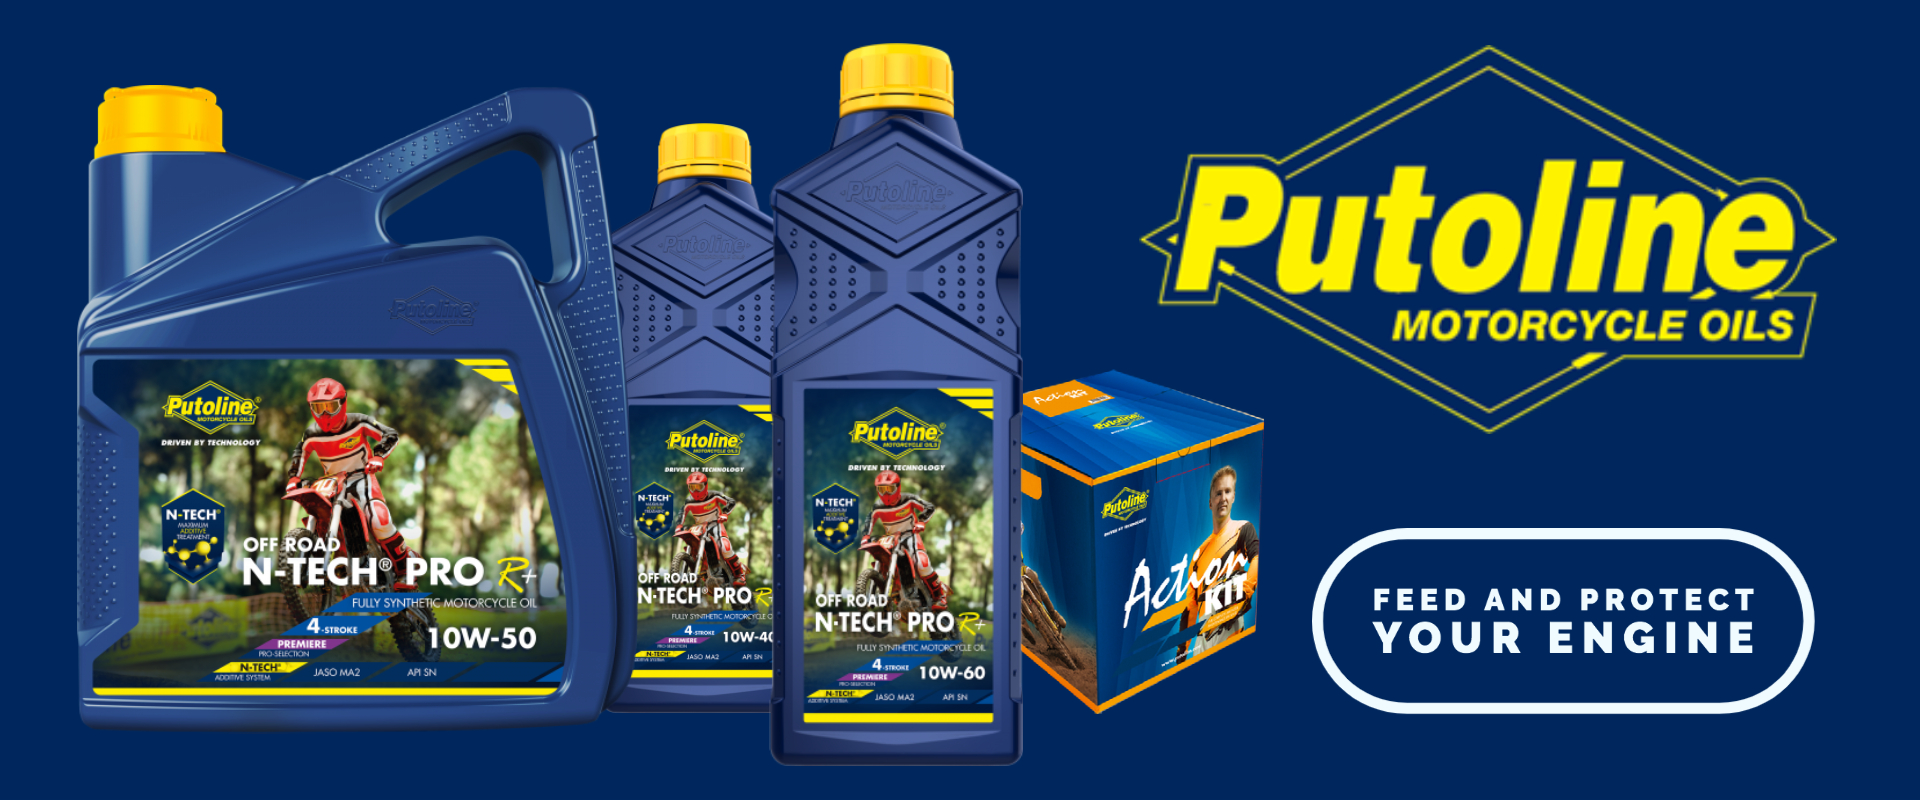 Putoline Motorcycle Oils and Air Filter Cleaners